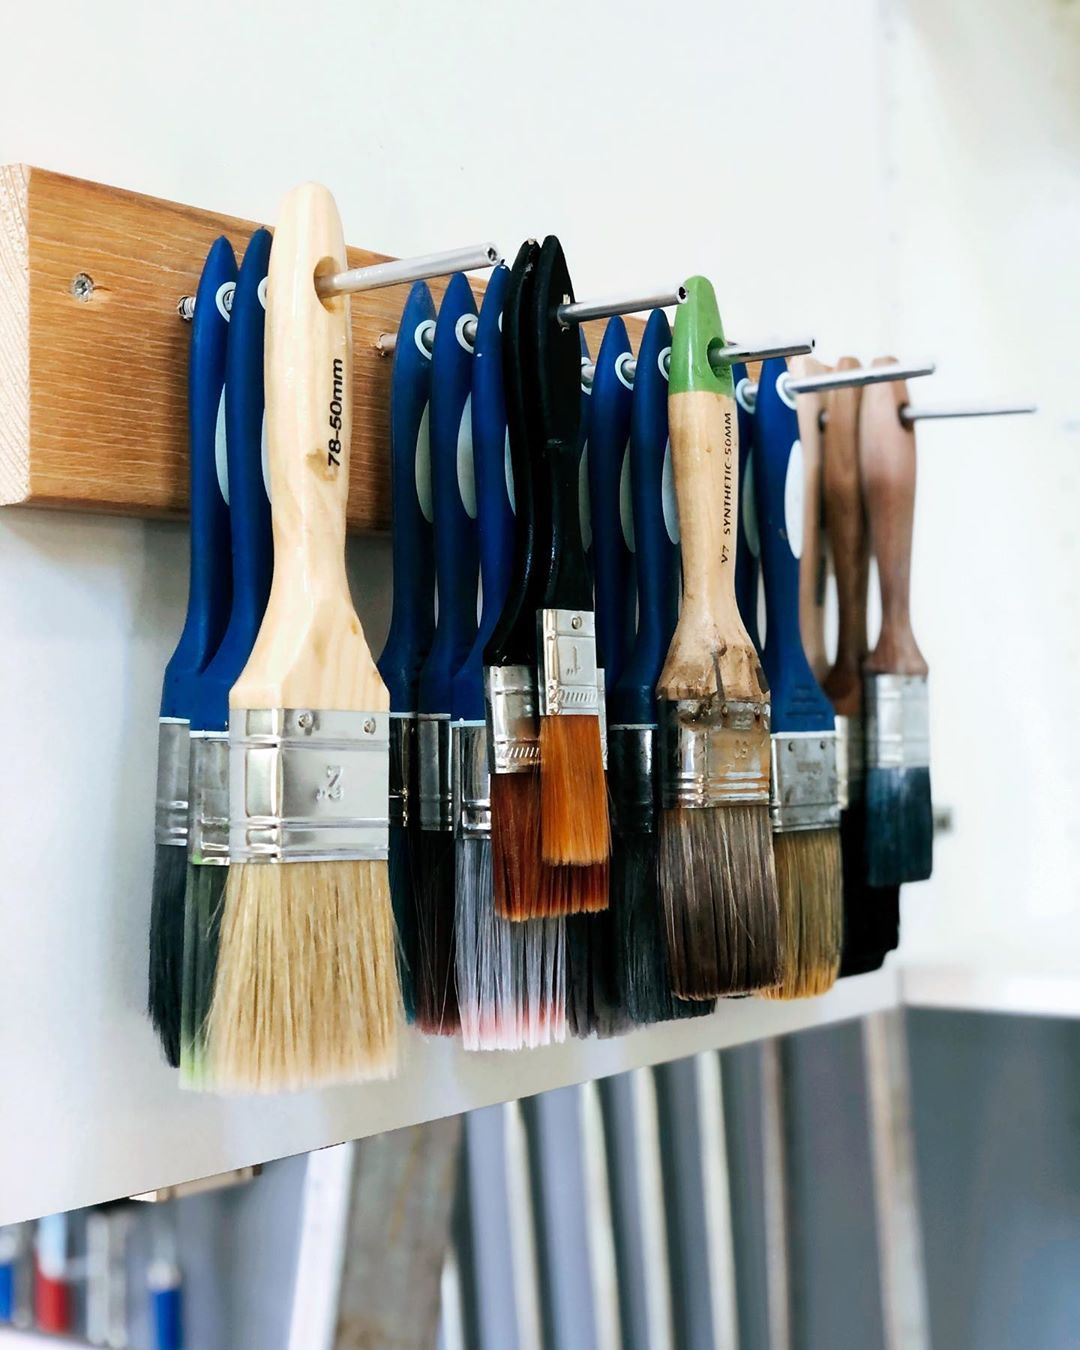 Hanging brushes on wood and nails